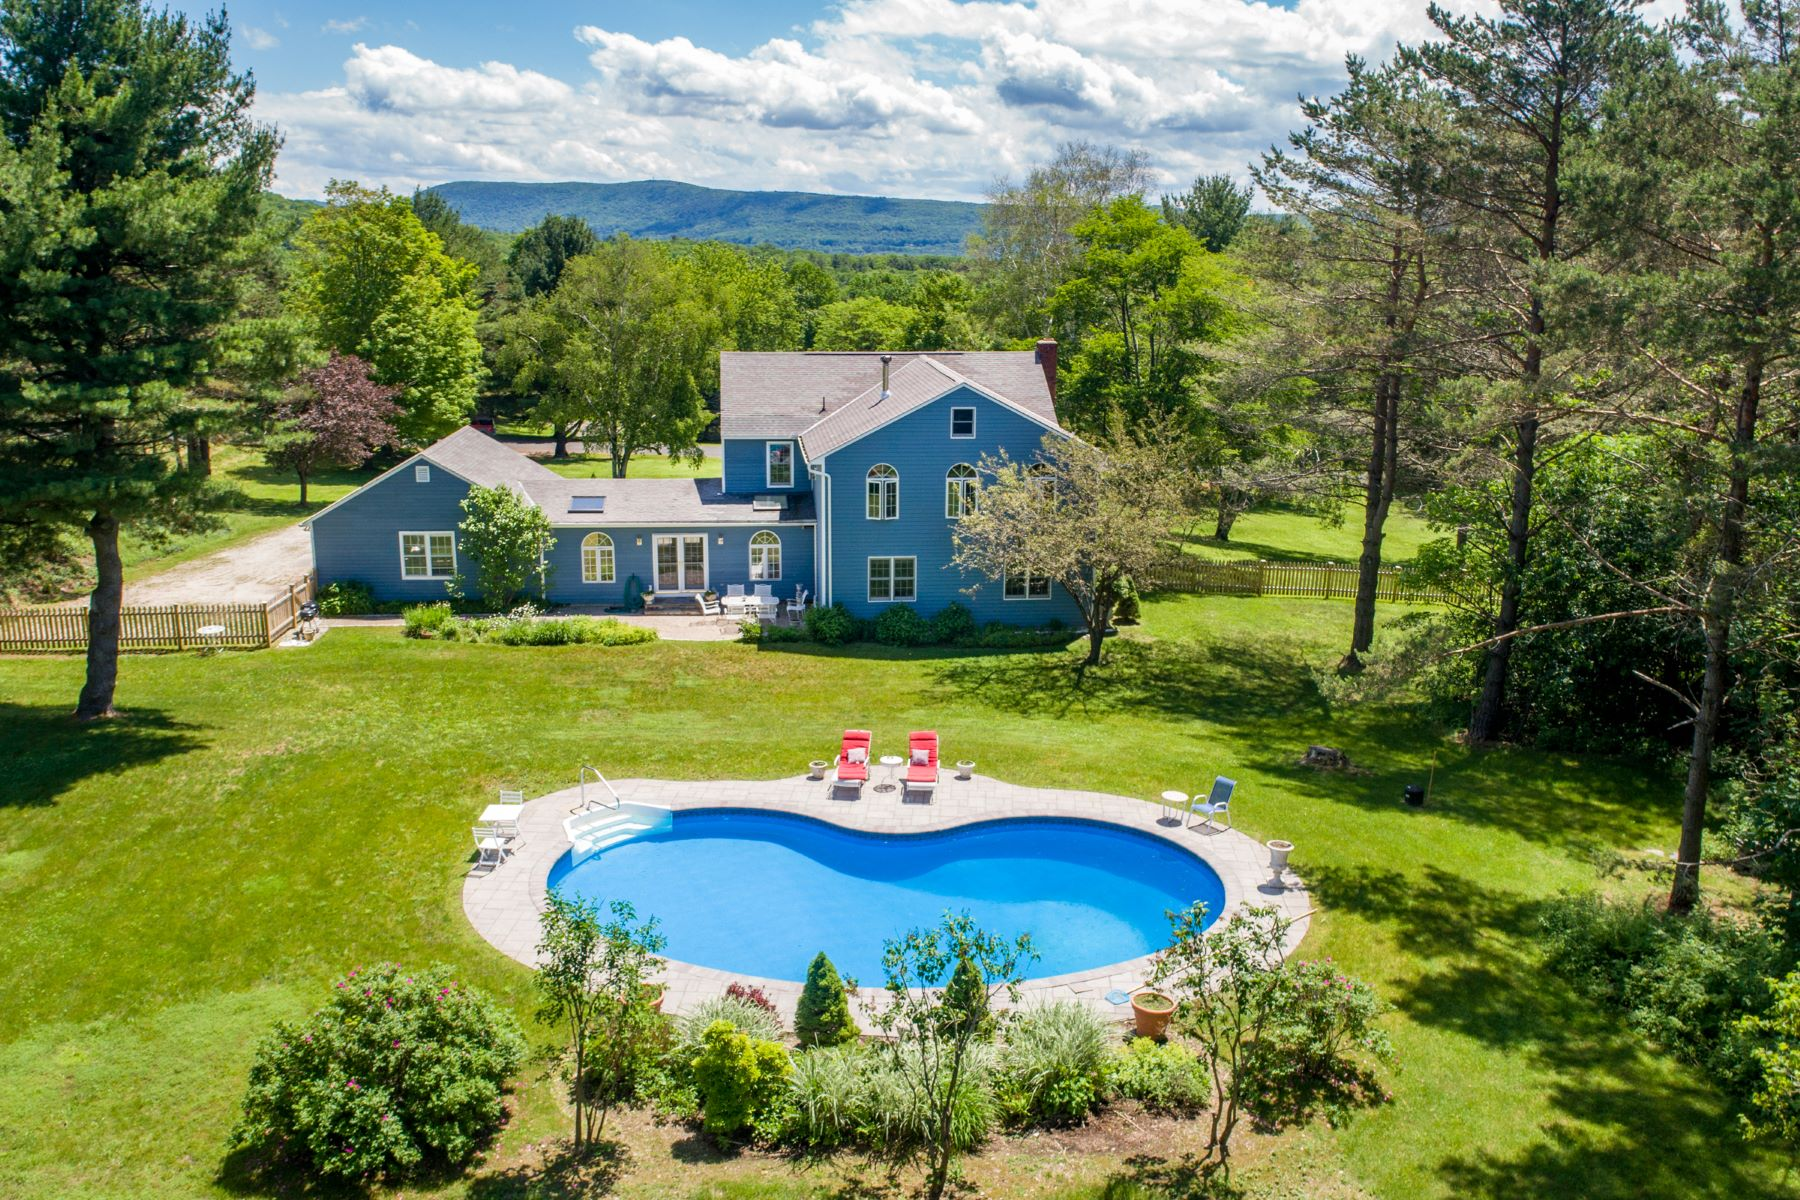 Single Family Home for Sale at Classic Colonial with Privacy and Pool 91 Deer Hill Rd Richmond, Massachusetts 01254 United States